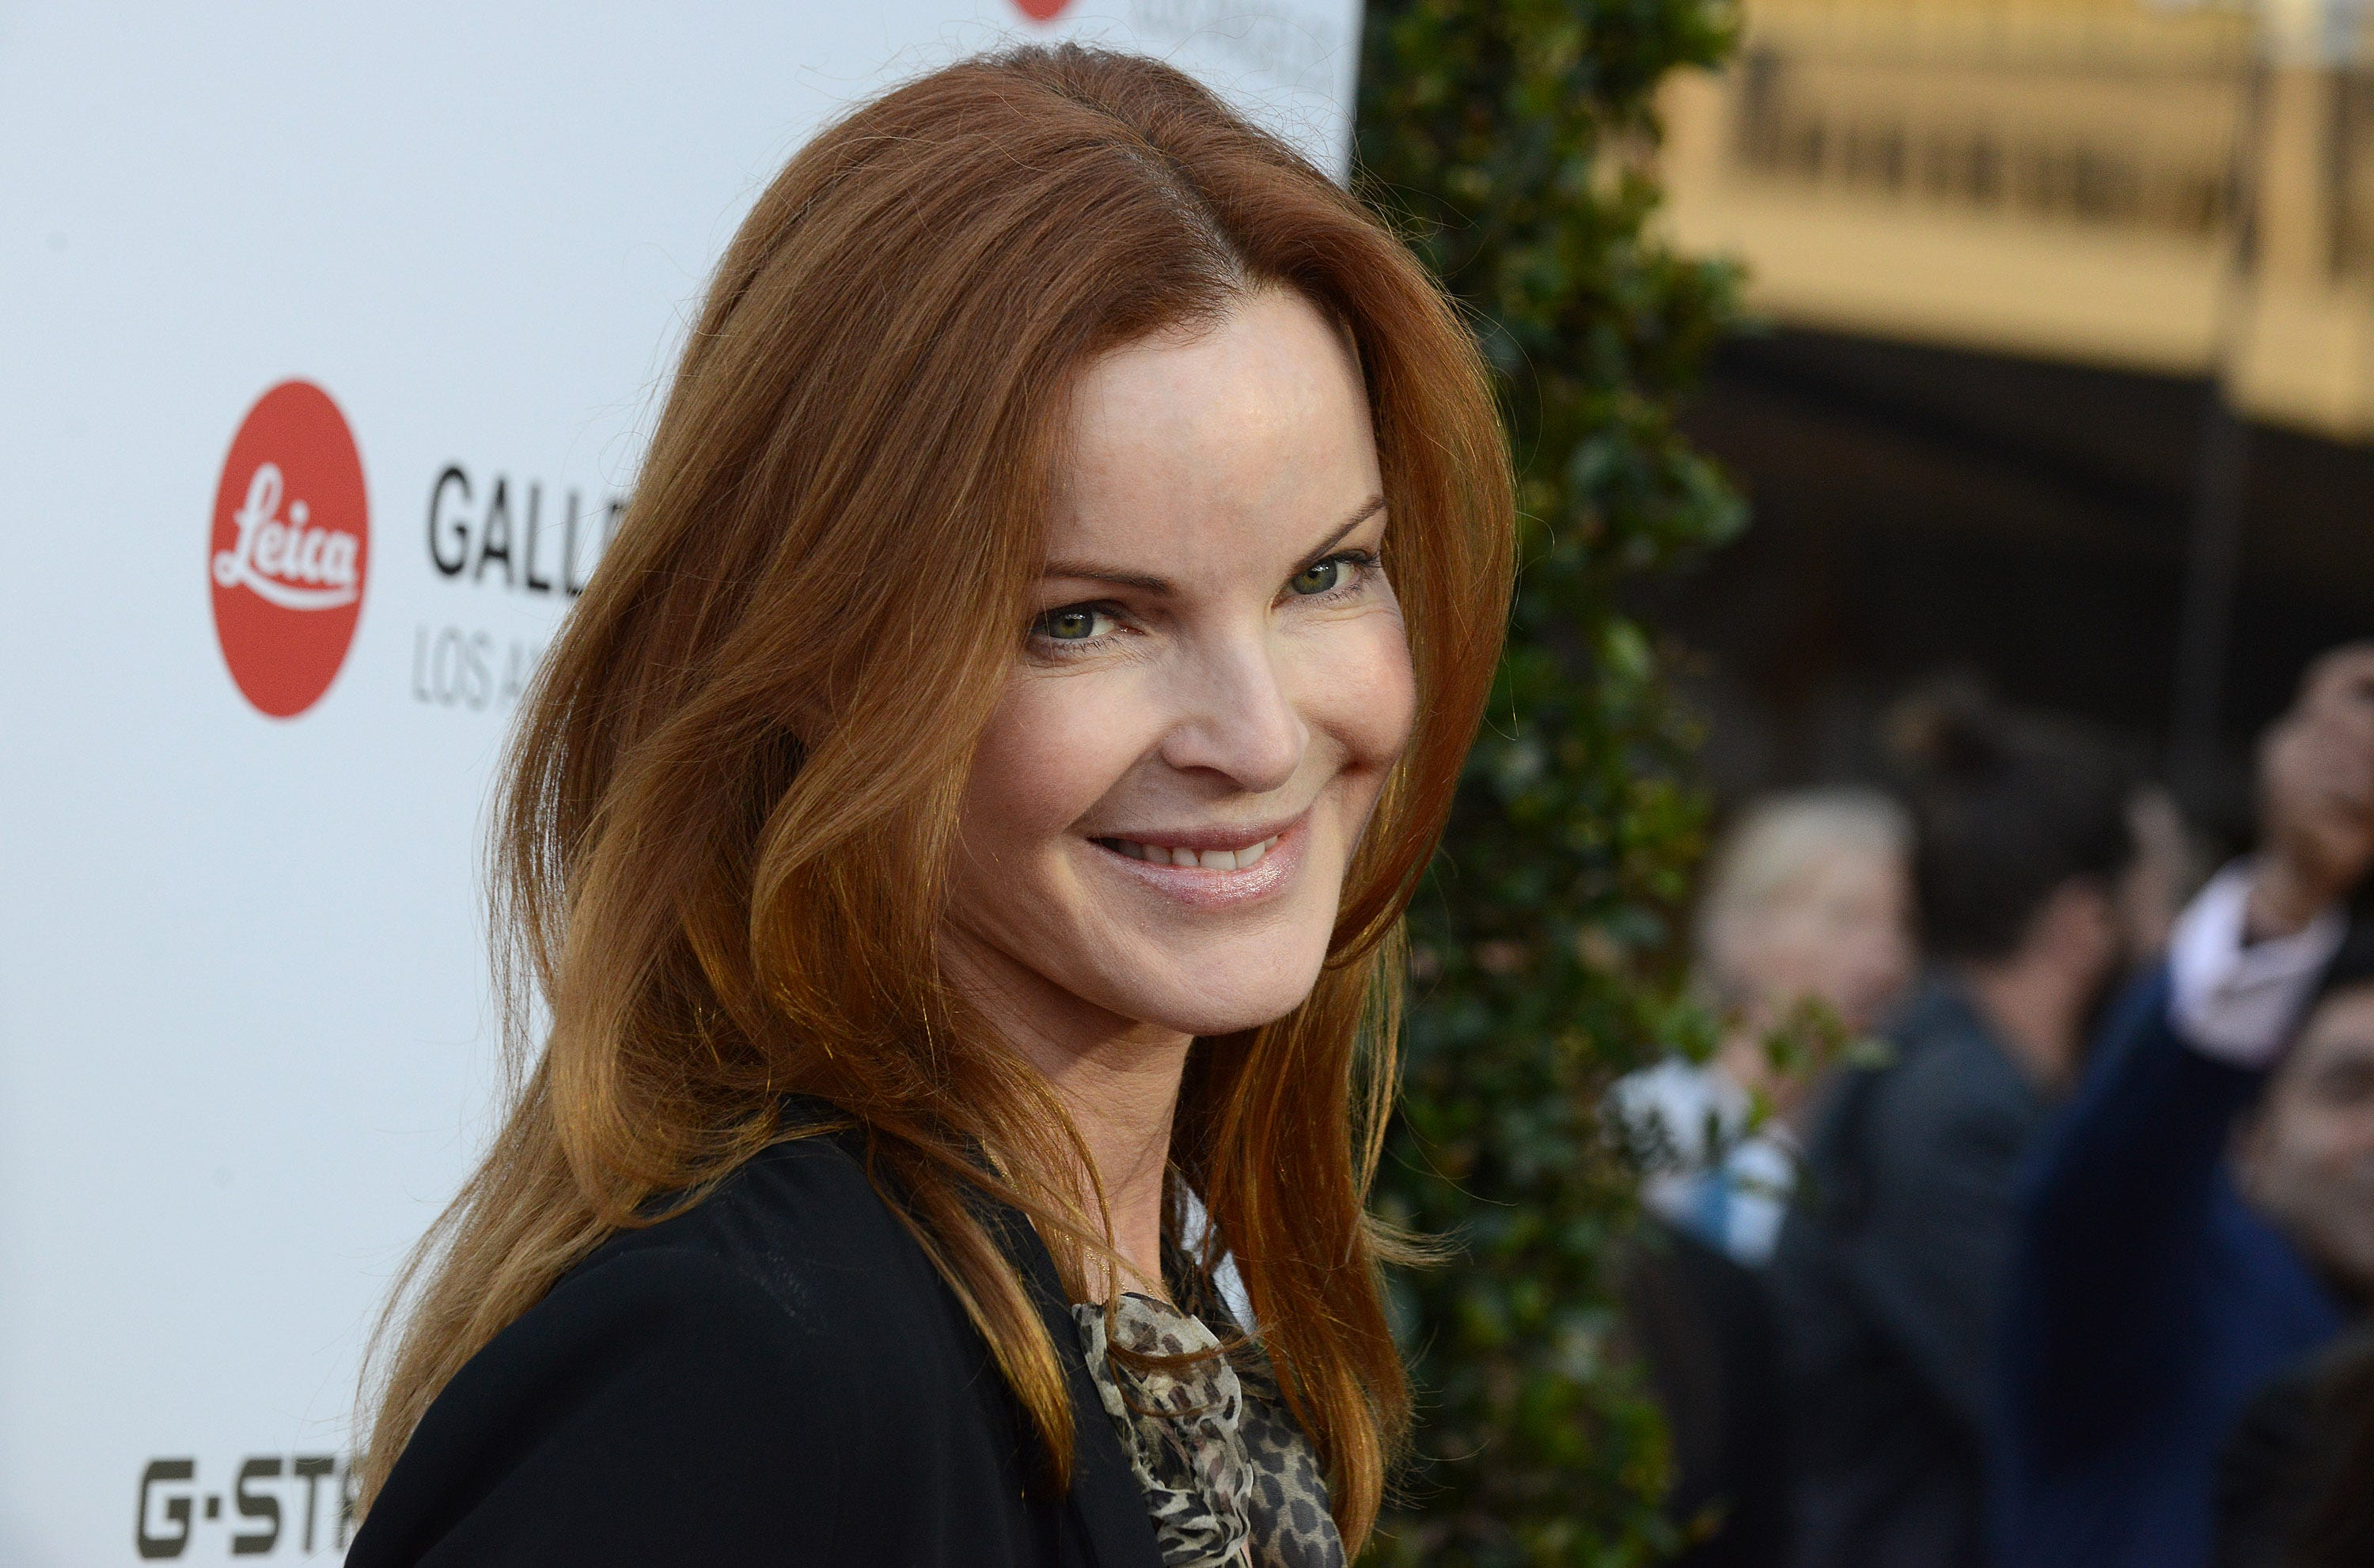 Fotos Marcia Cross nude (89 foto and video), Tits, Bikini, Twitter, in bikini 2020